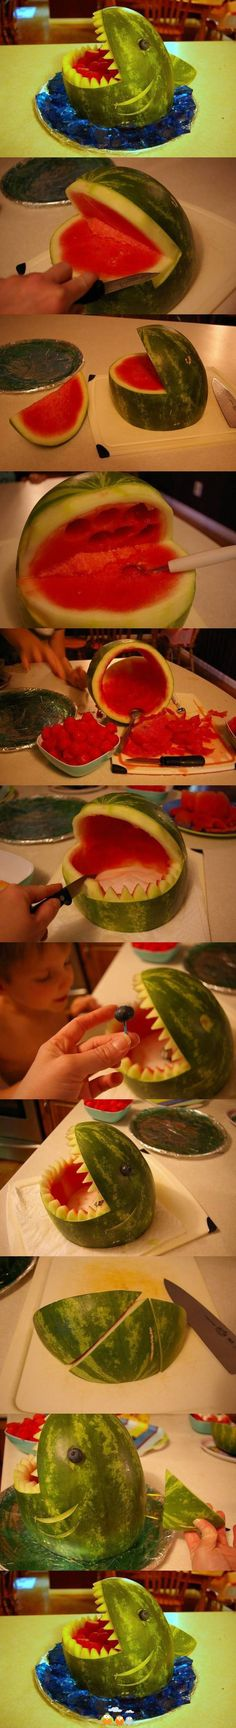 How To Make A Watermelon Shark summer food fruit diy how to tutorial party ideas party food party favors food art tutorials summer ideas food carving Ocean Party, Water Party, Luau Party, Shark Party Favors, Kids Beach Party, Party Summer, Fiesta Party, Summer Food, Summer Ideas